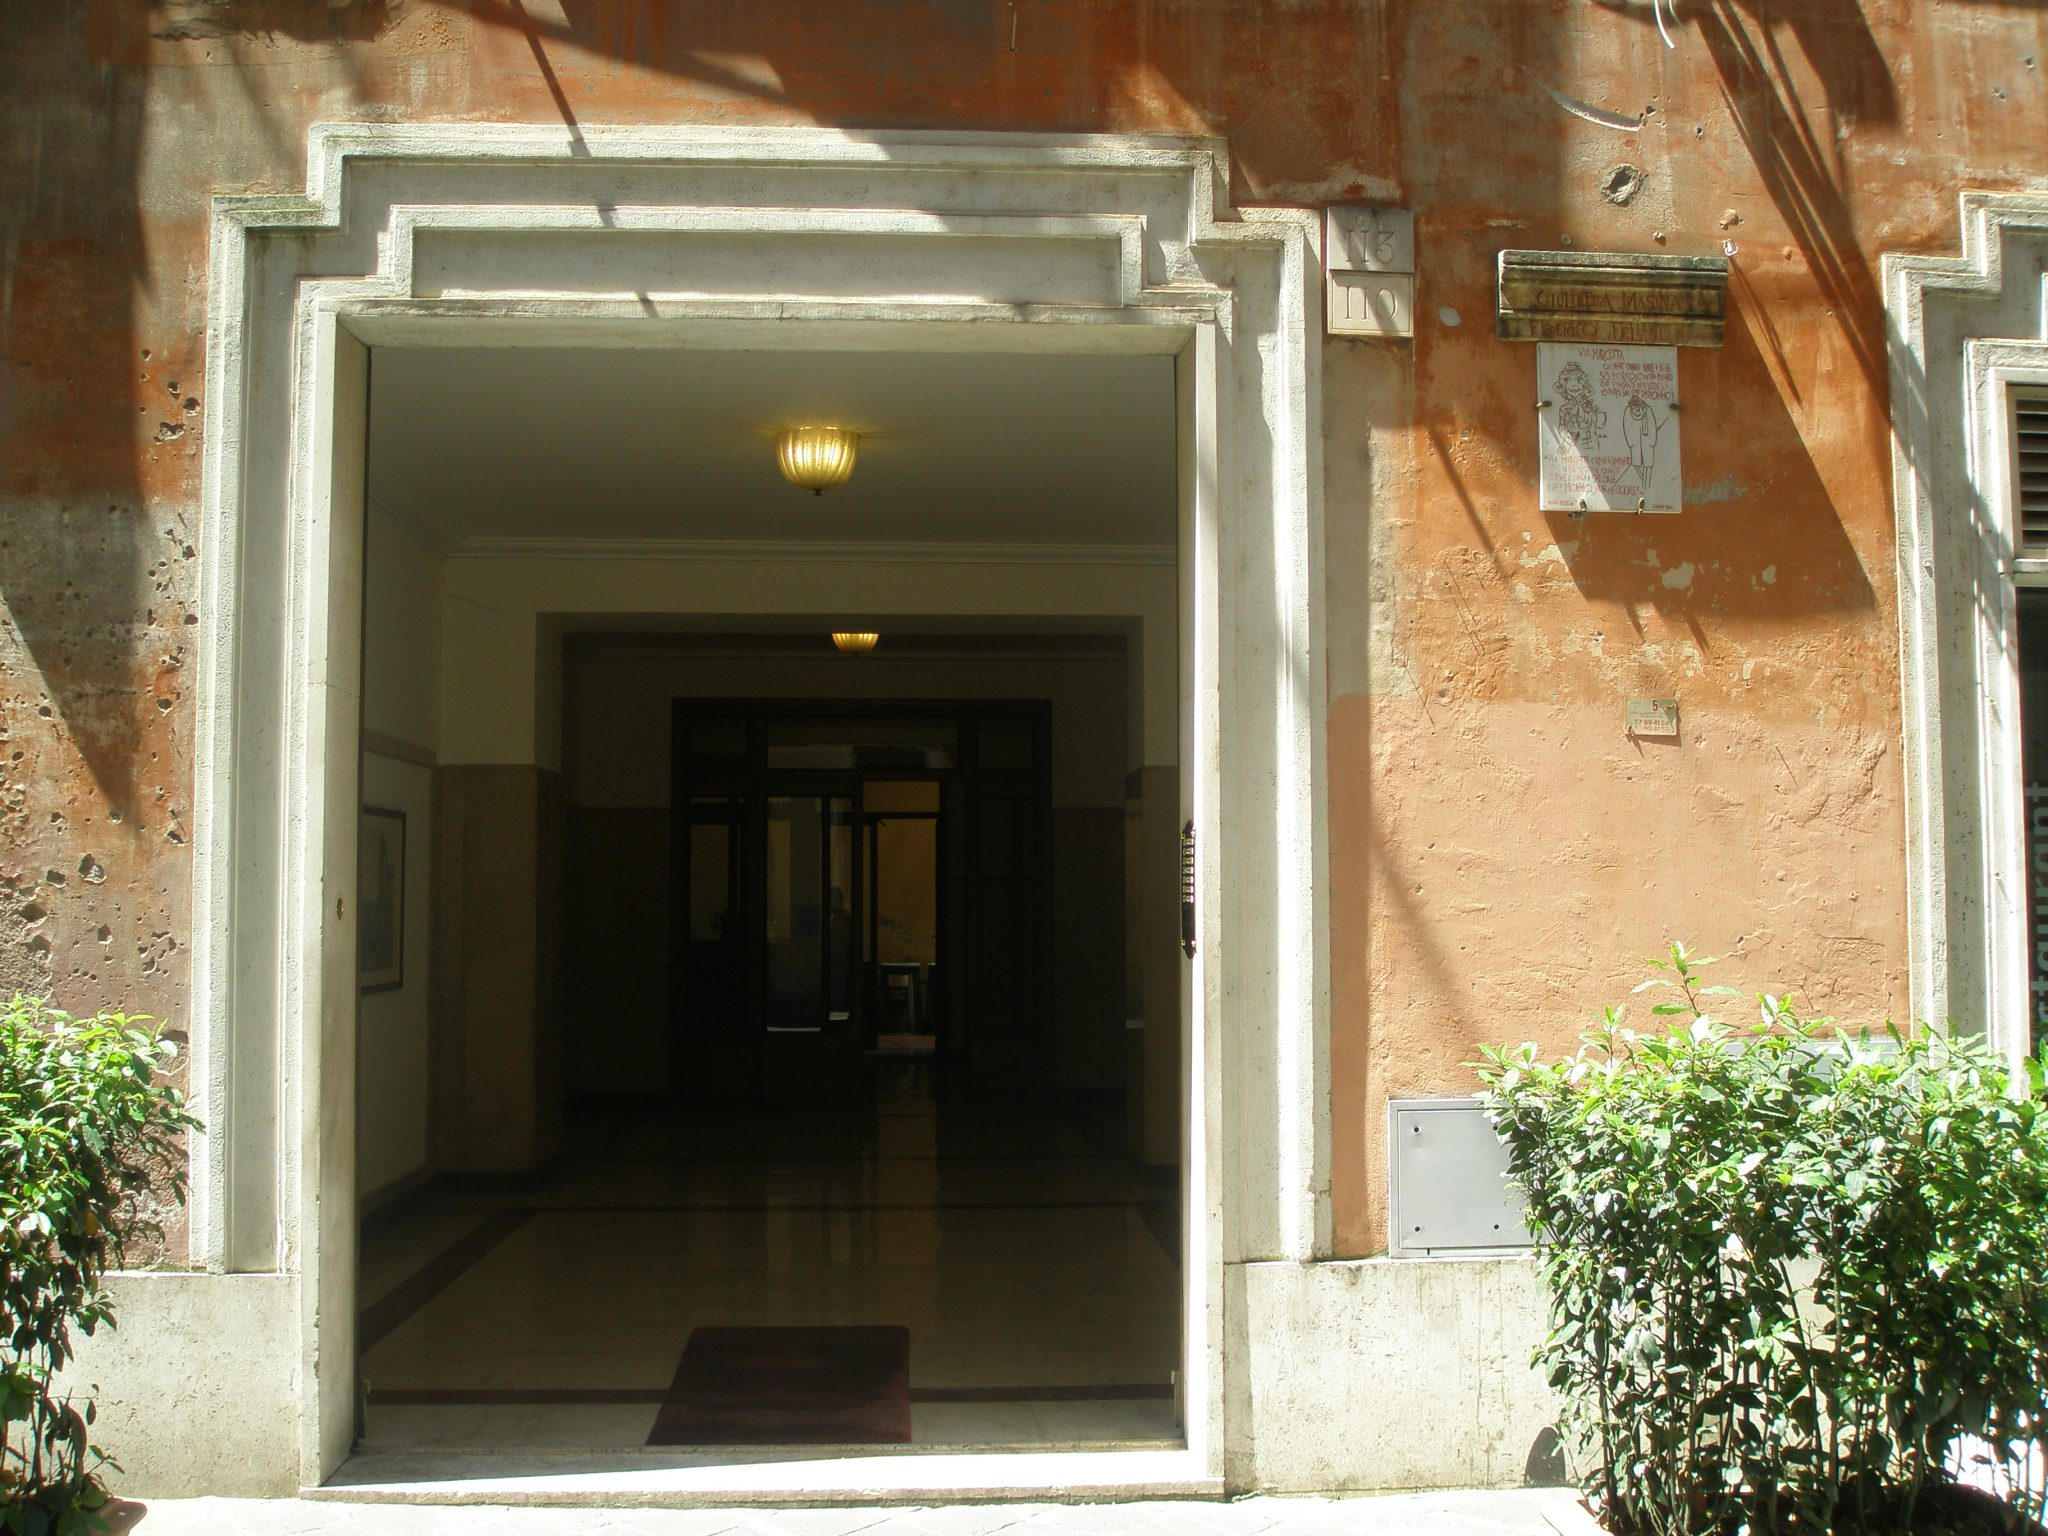 Entrance to Masina and Fellini's apartment building on Via Margutta